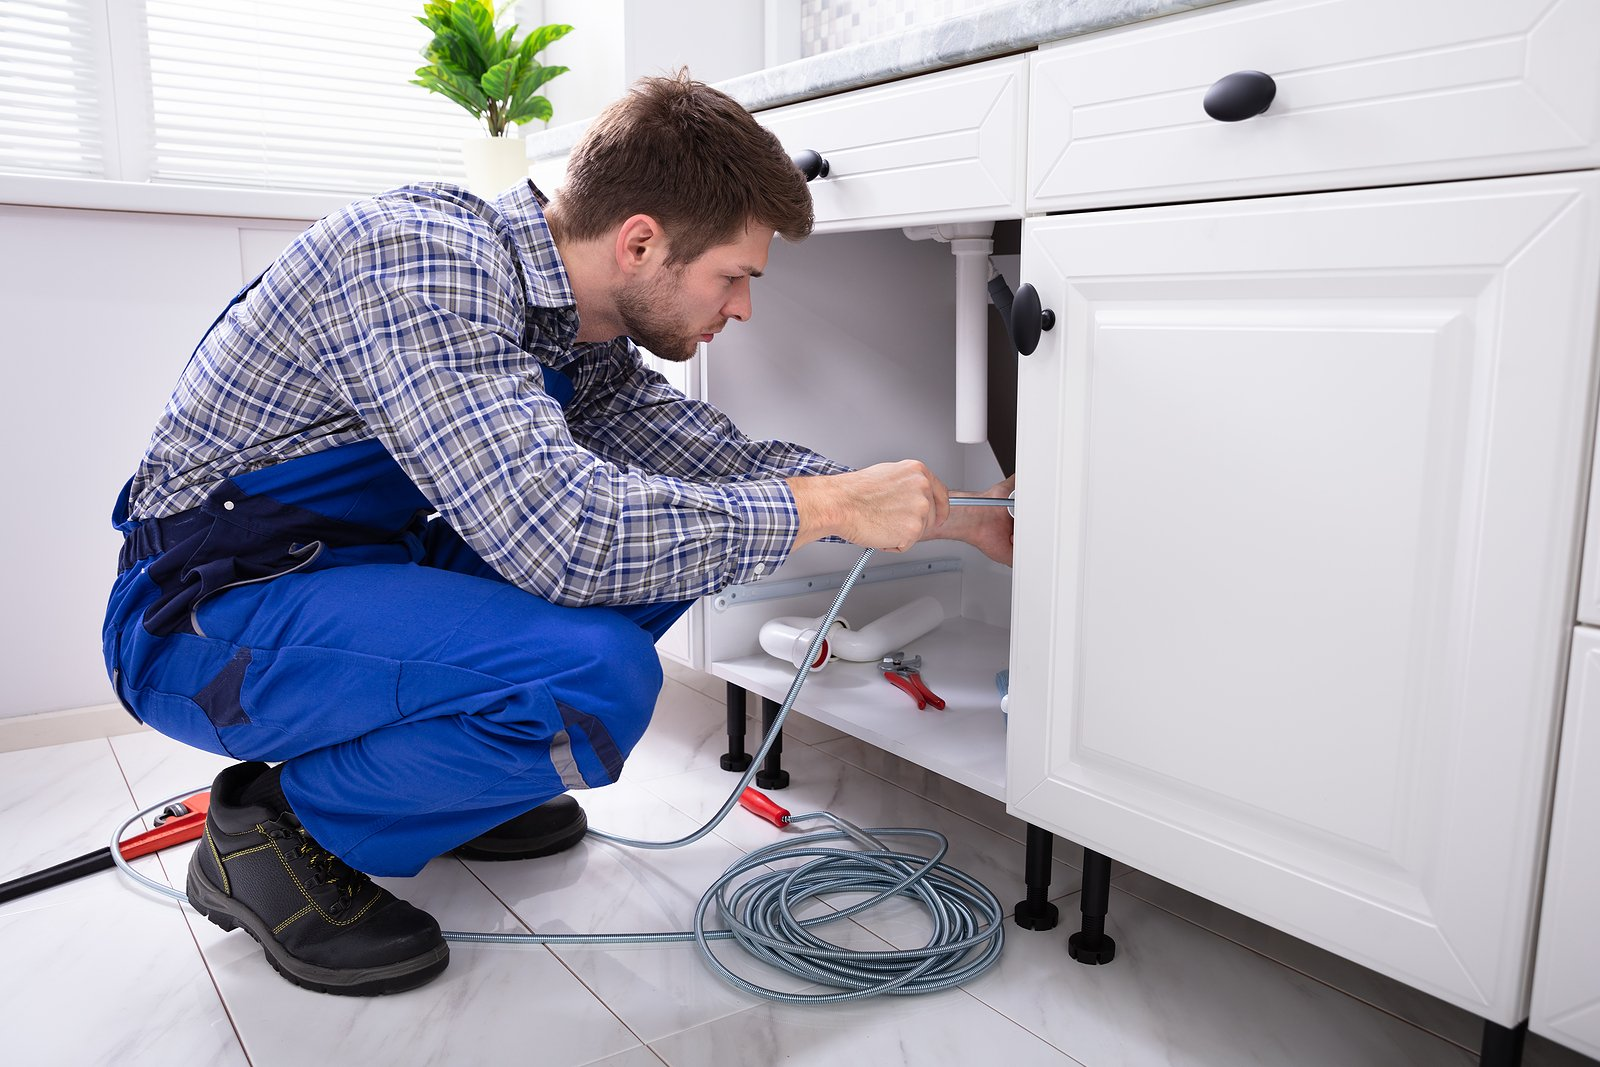 Young-Male-Plumber-Cleaning-Clogged-Sink-Pipe-in-Kitche